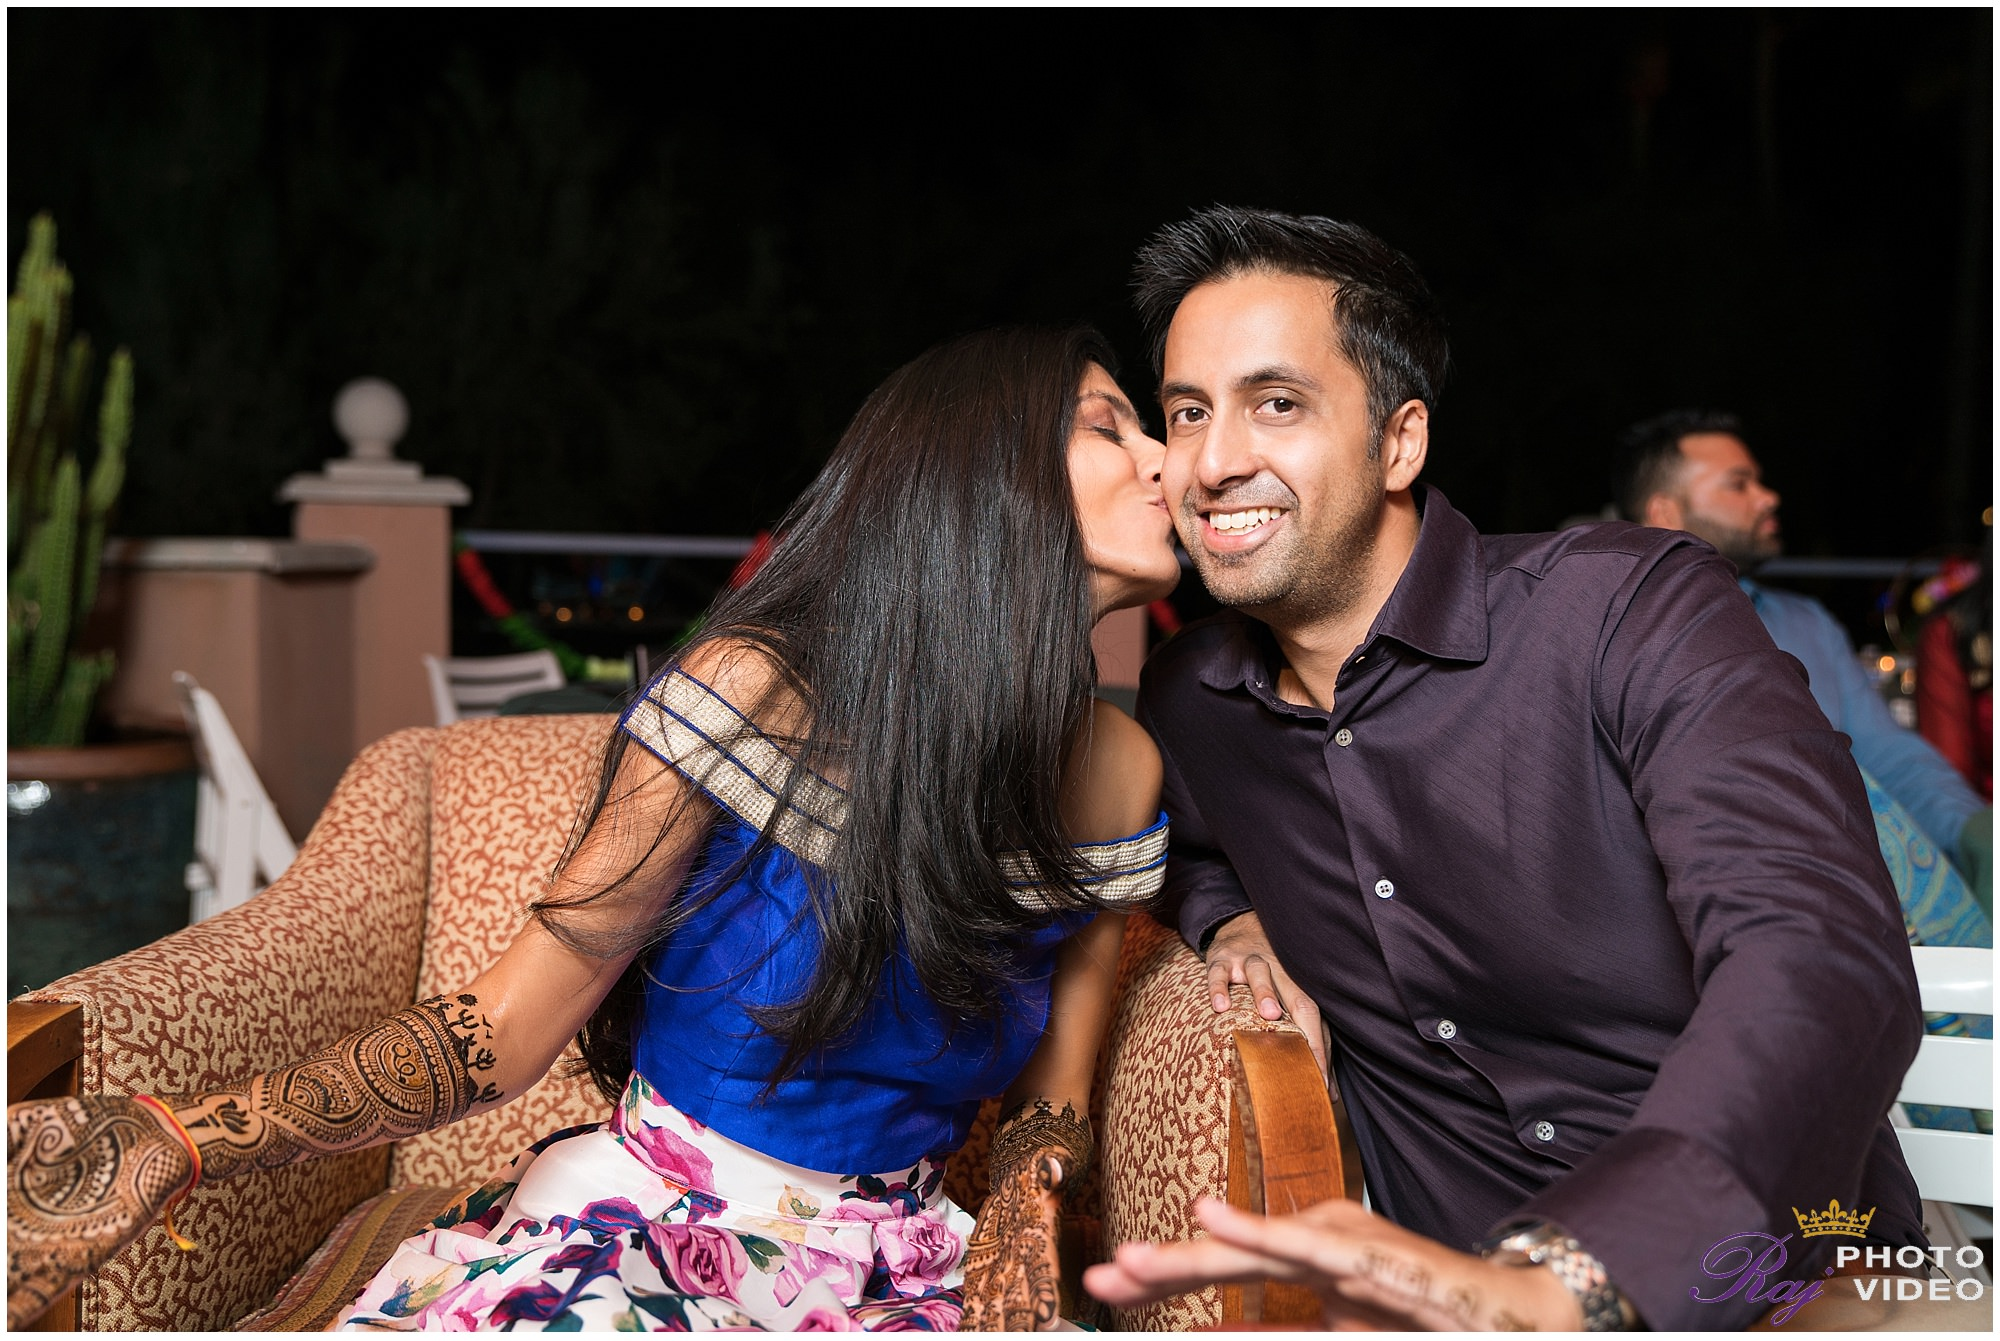 Scottsdale_Marriott_at_McDowell_Mountains_Arizona_Indian_Wedding_Sapna_Shyam-17.jpg